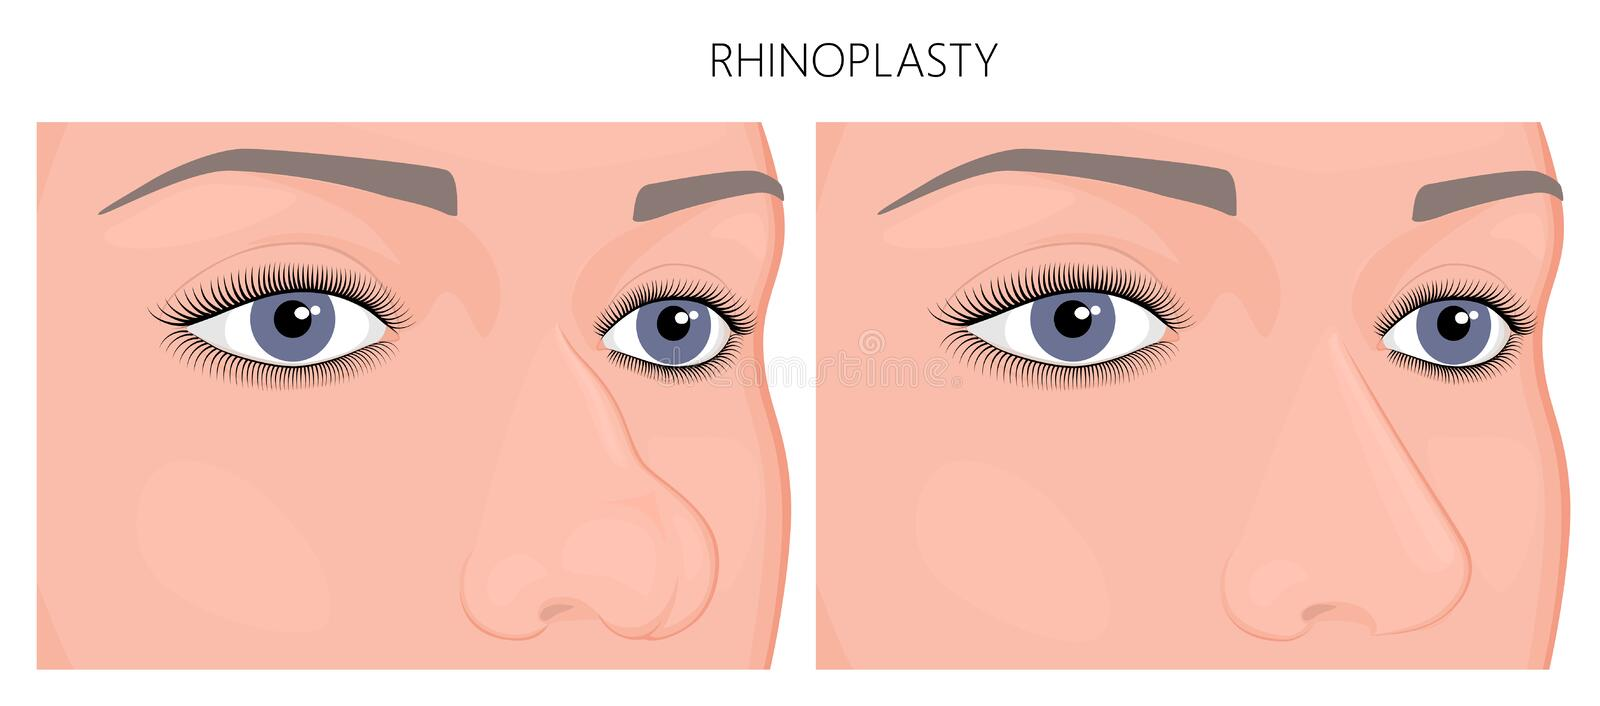 Plastique surgery_Rhinoplasty illustration de vecteur